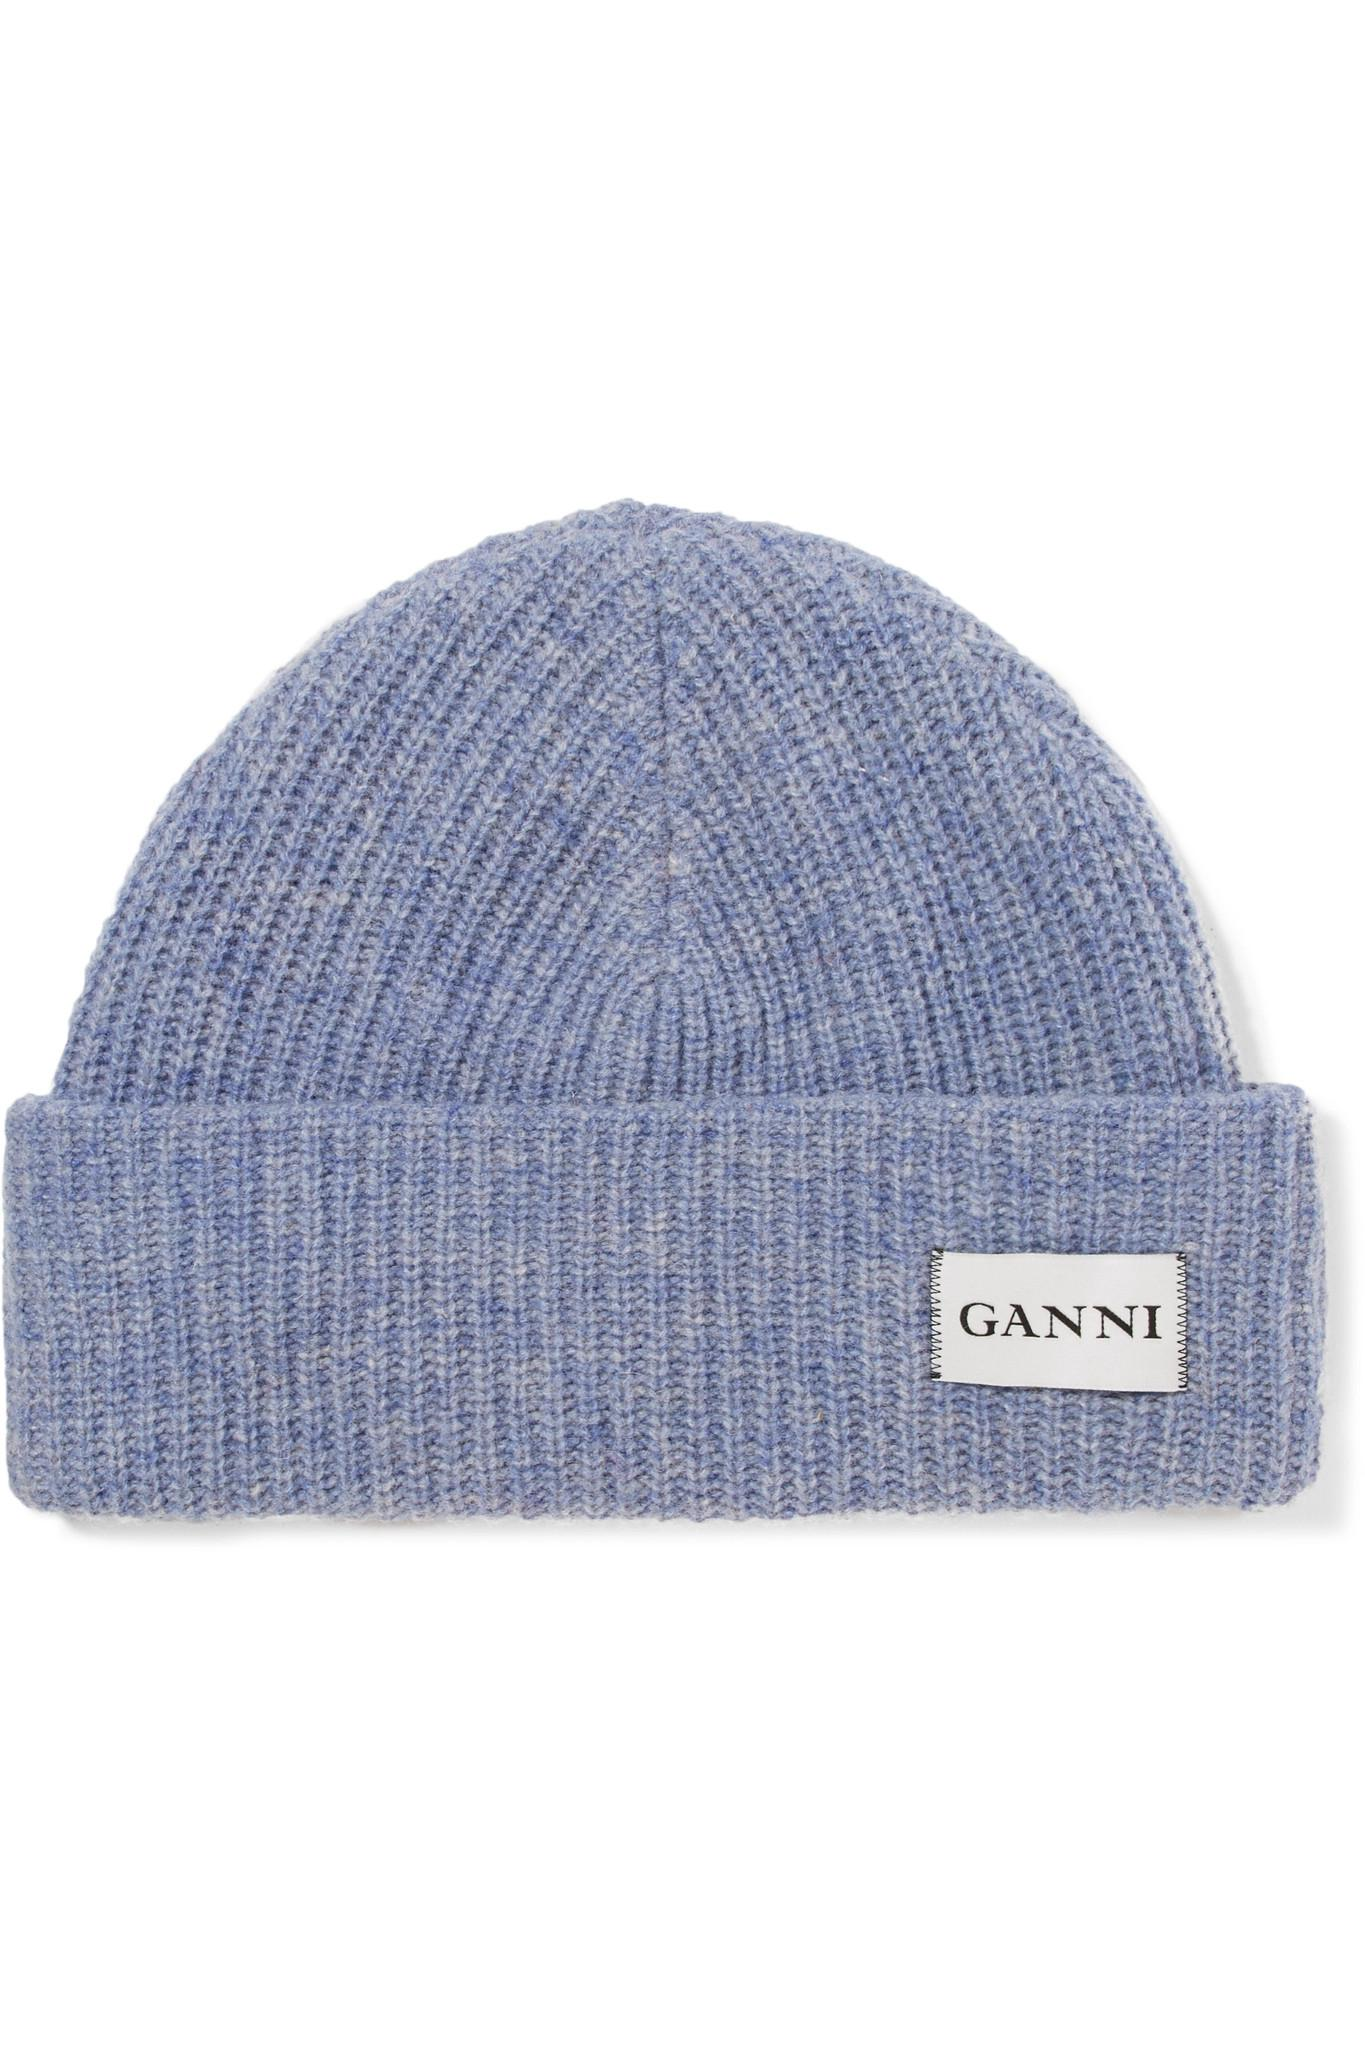 Ganni Ribbed Wool Beanie in Purple - Lyst 8c4db119bc8f